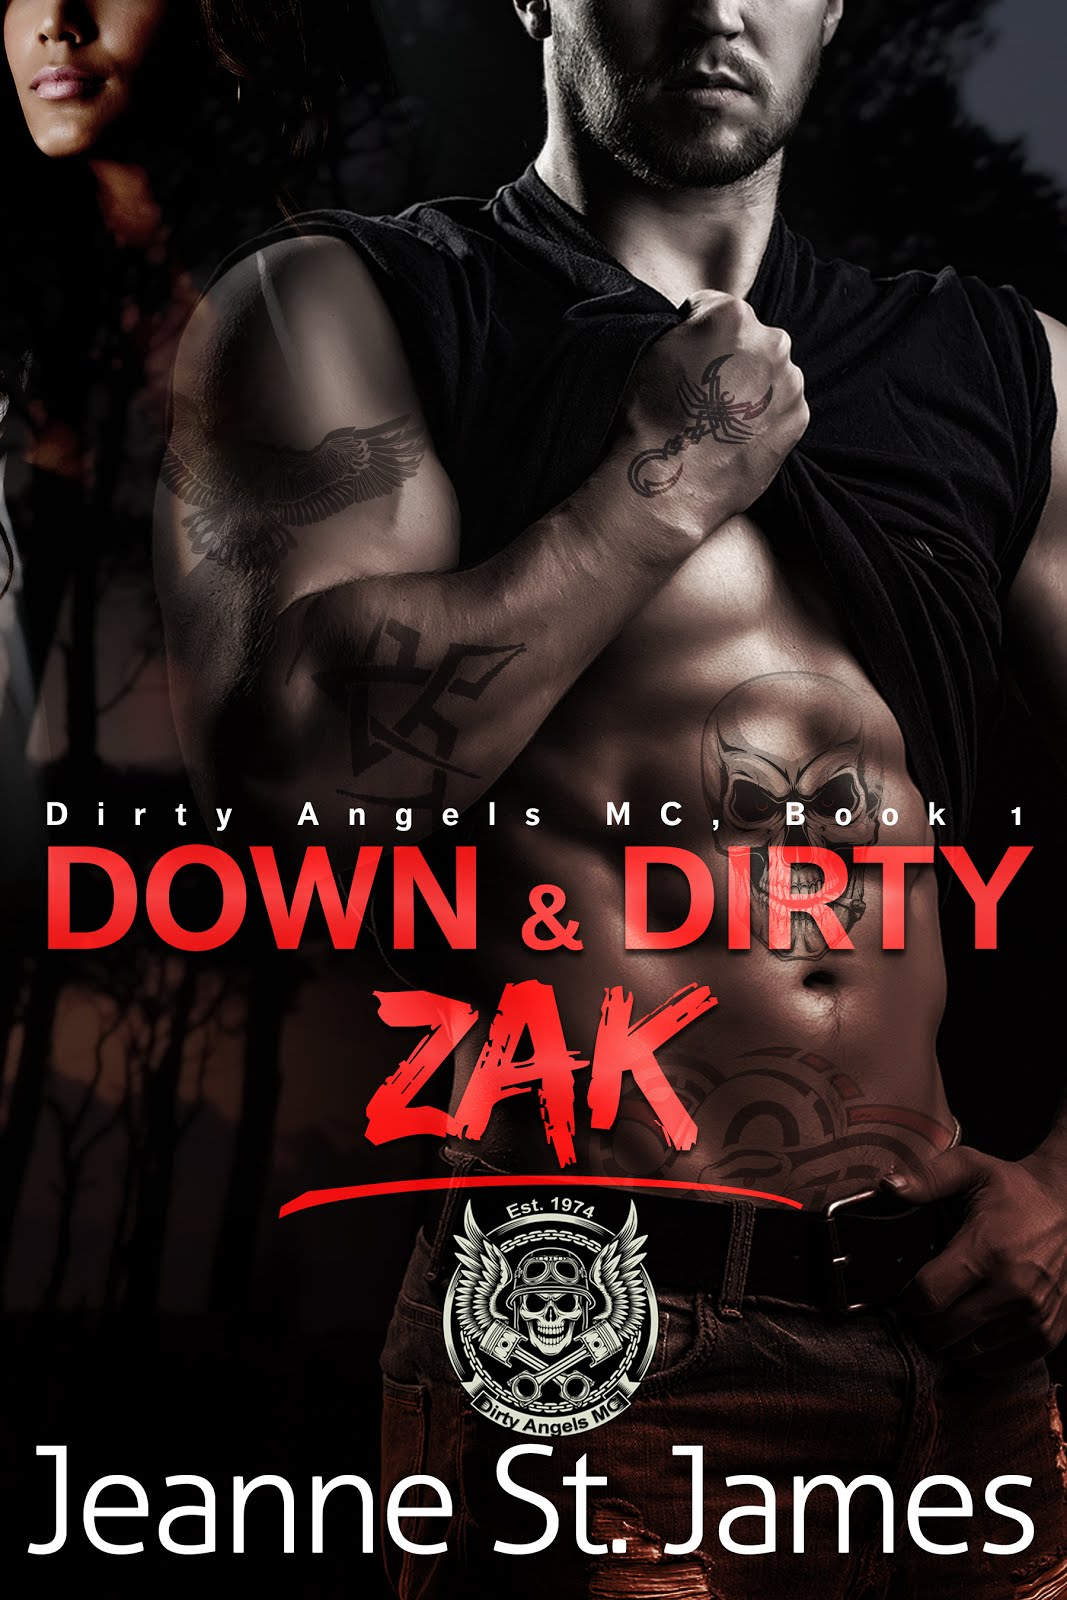 Down & Dirty: Zak